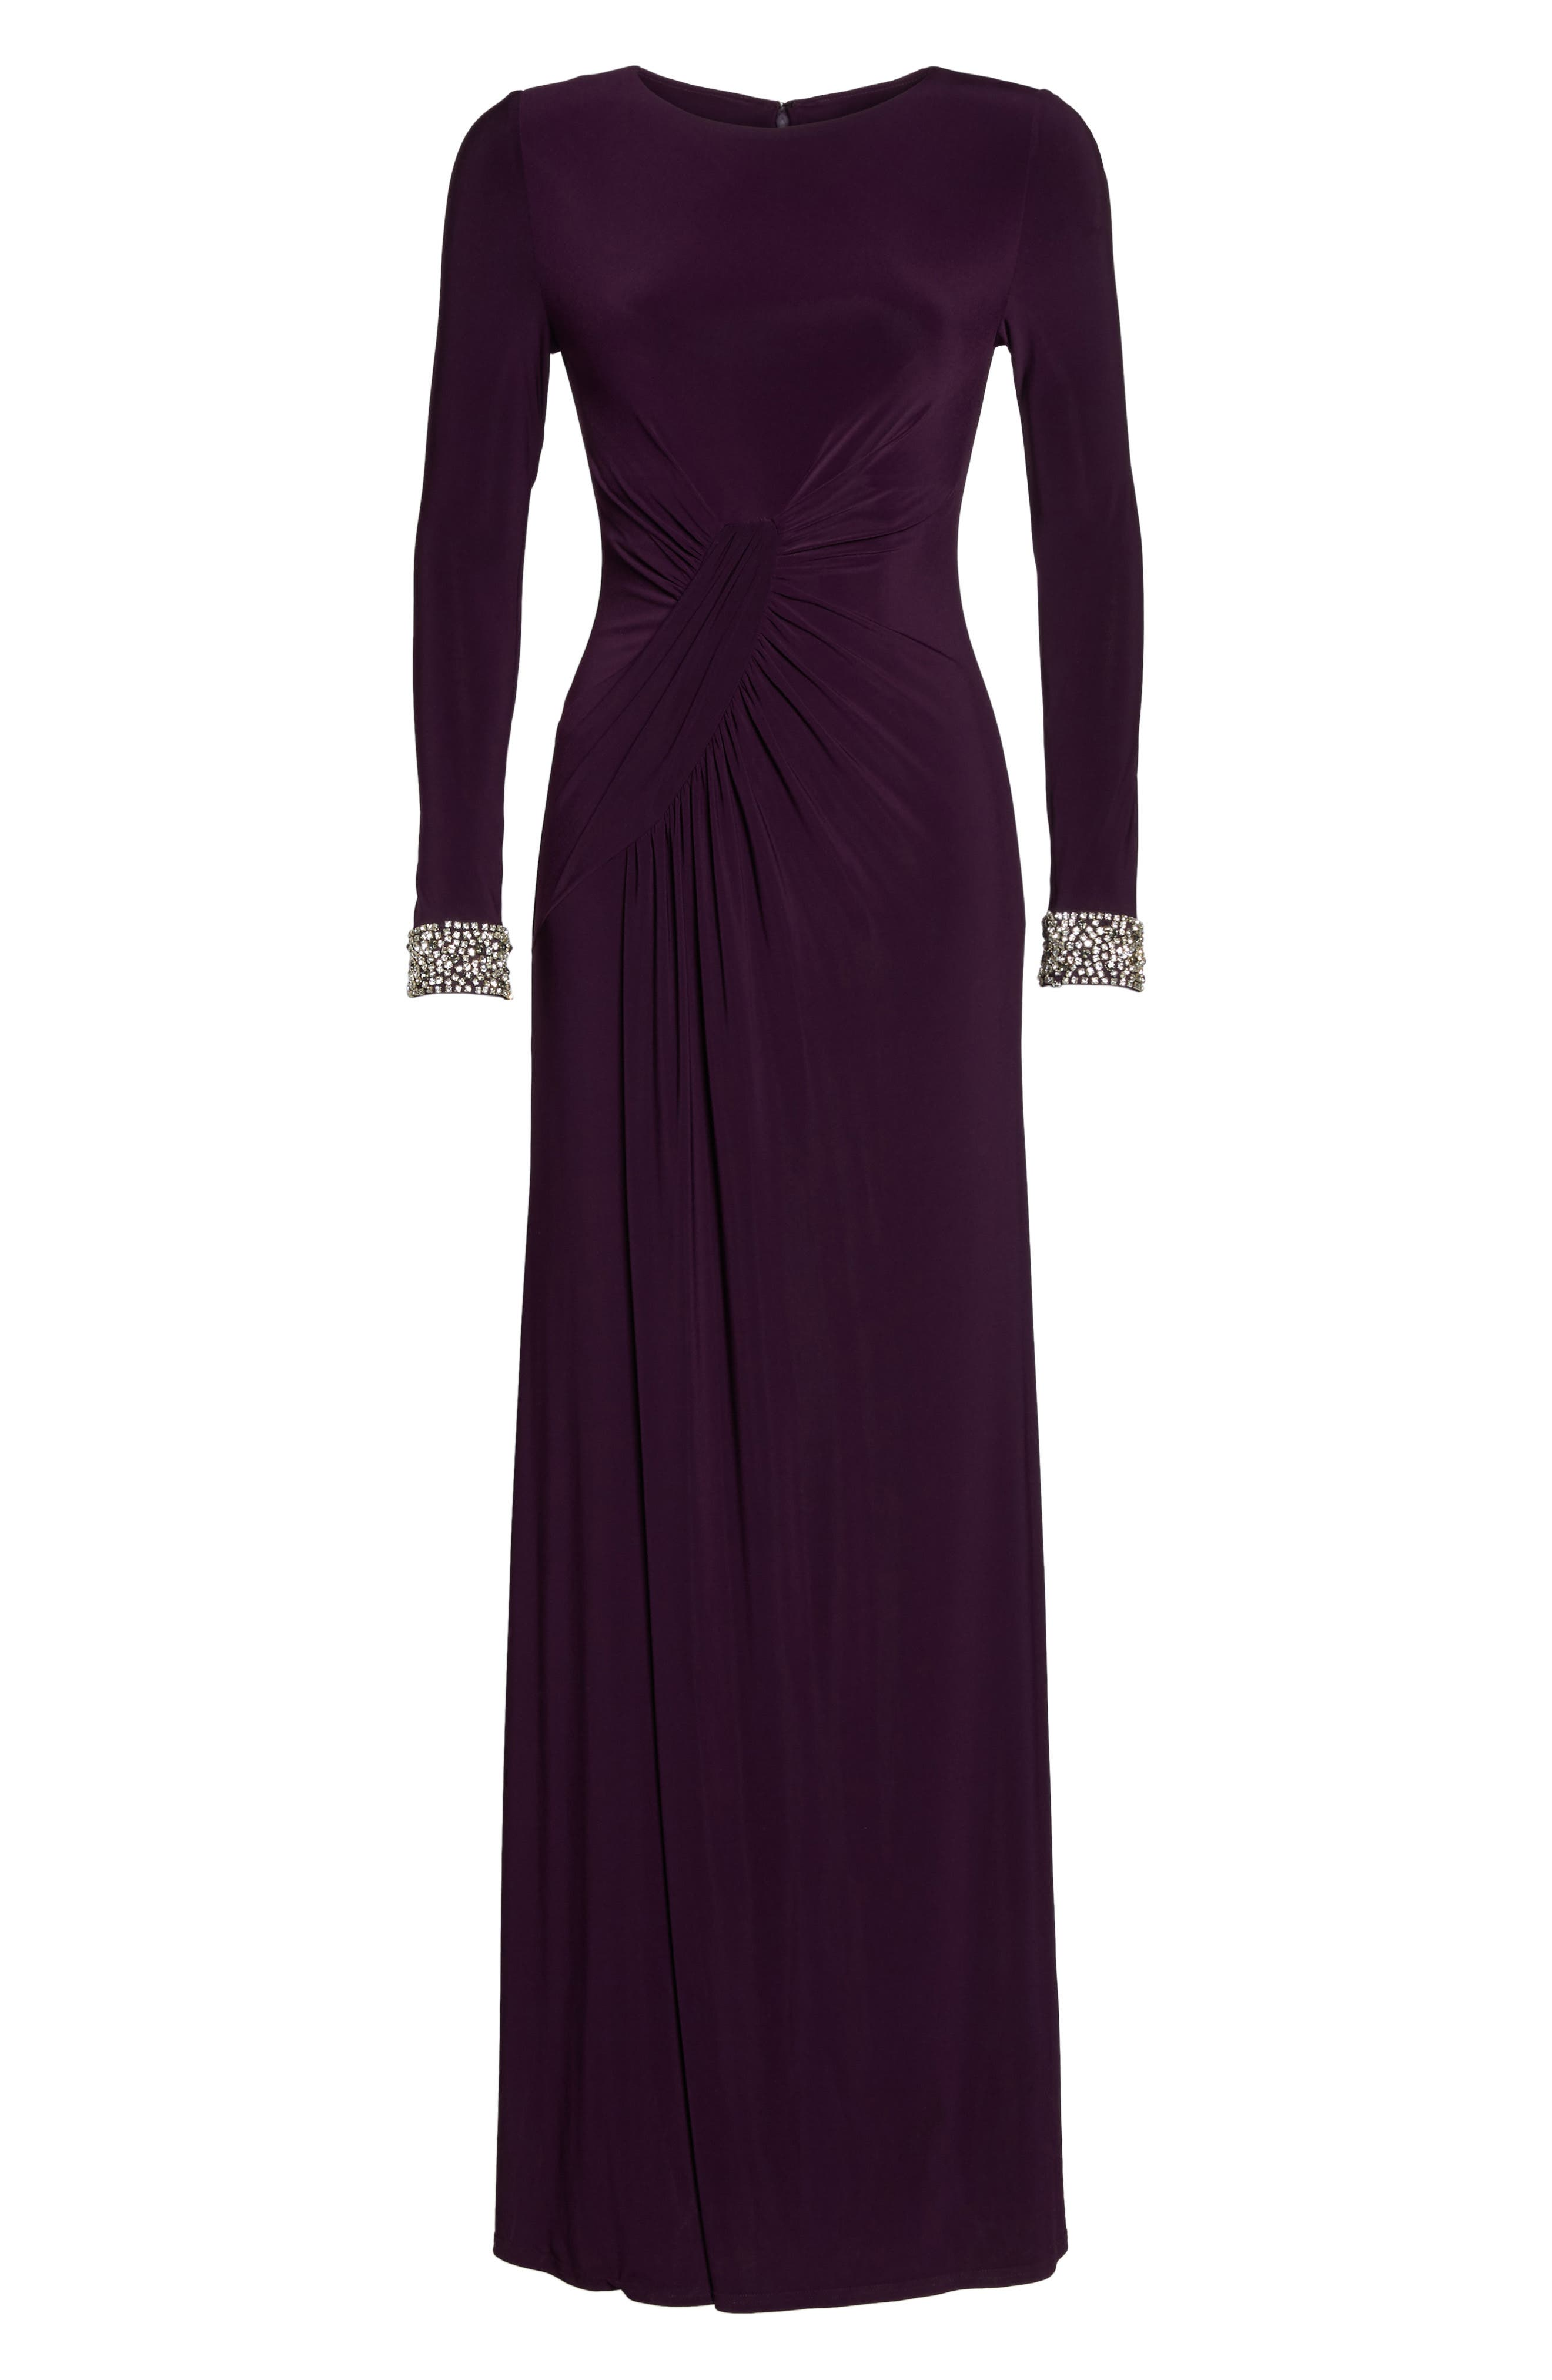 Beaded Cuff Ruched Jersey Gown,                             Alternate thumbnail 7, color,                             505